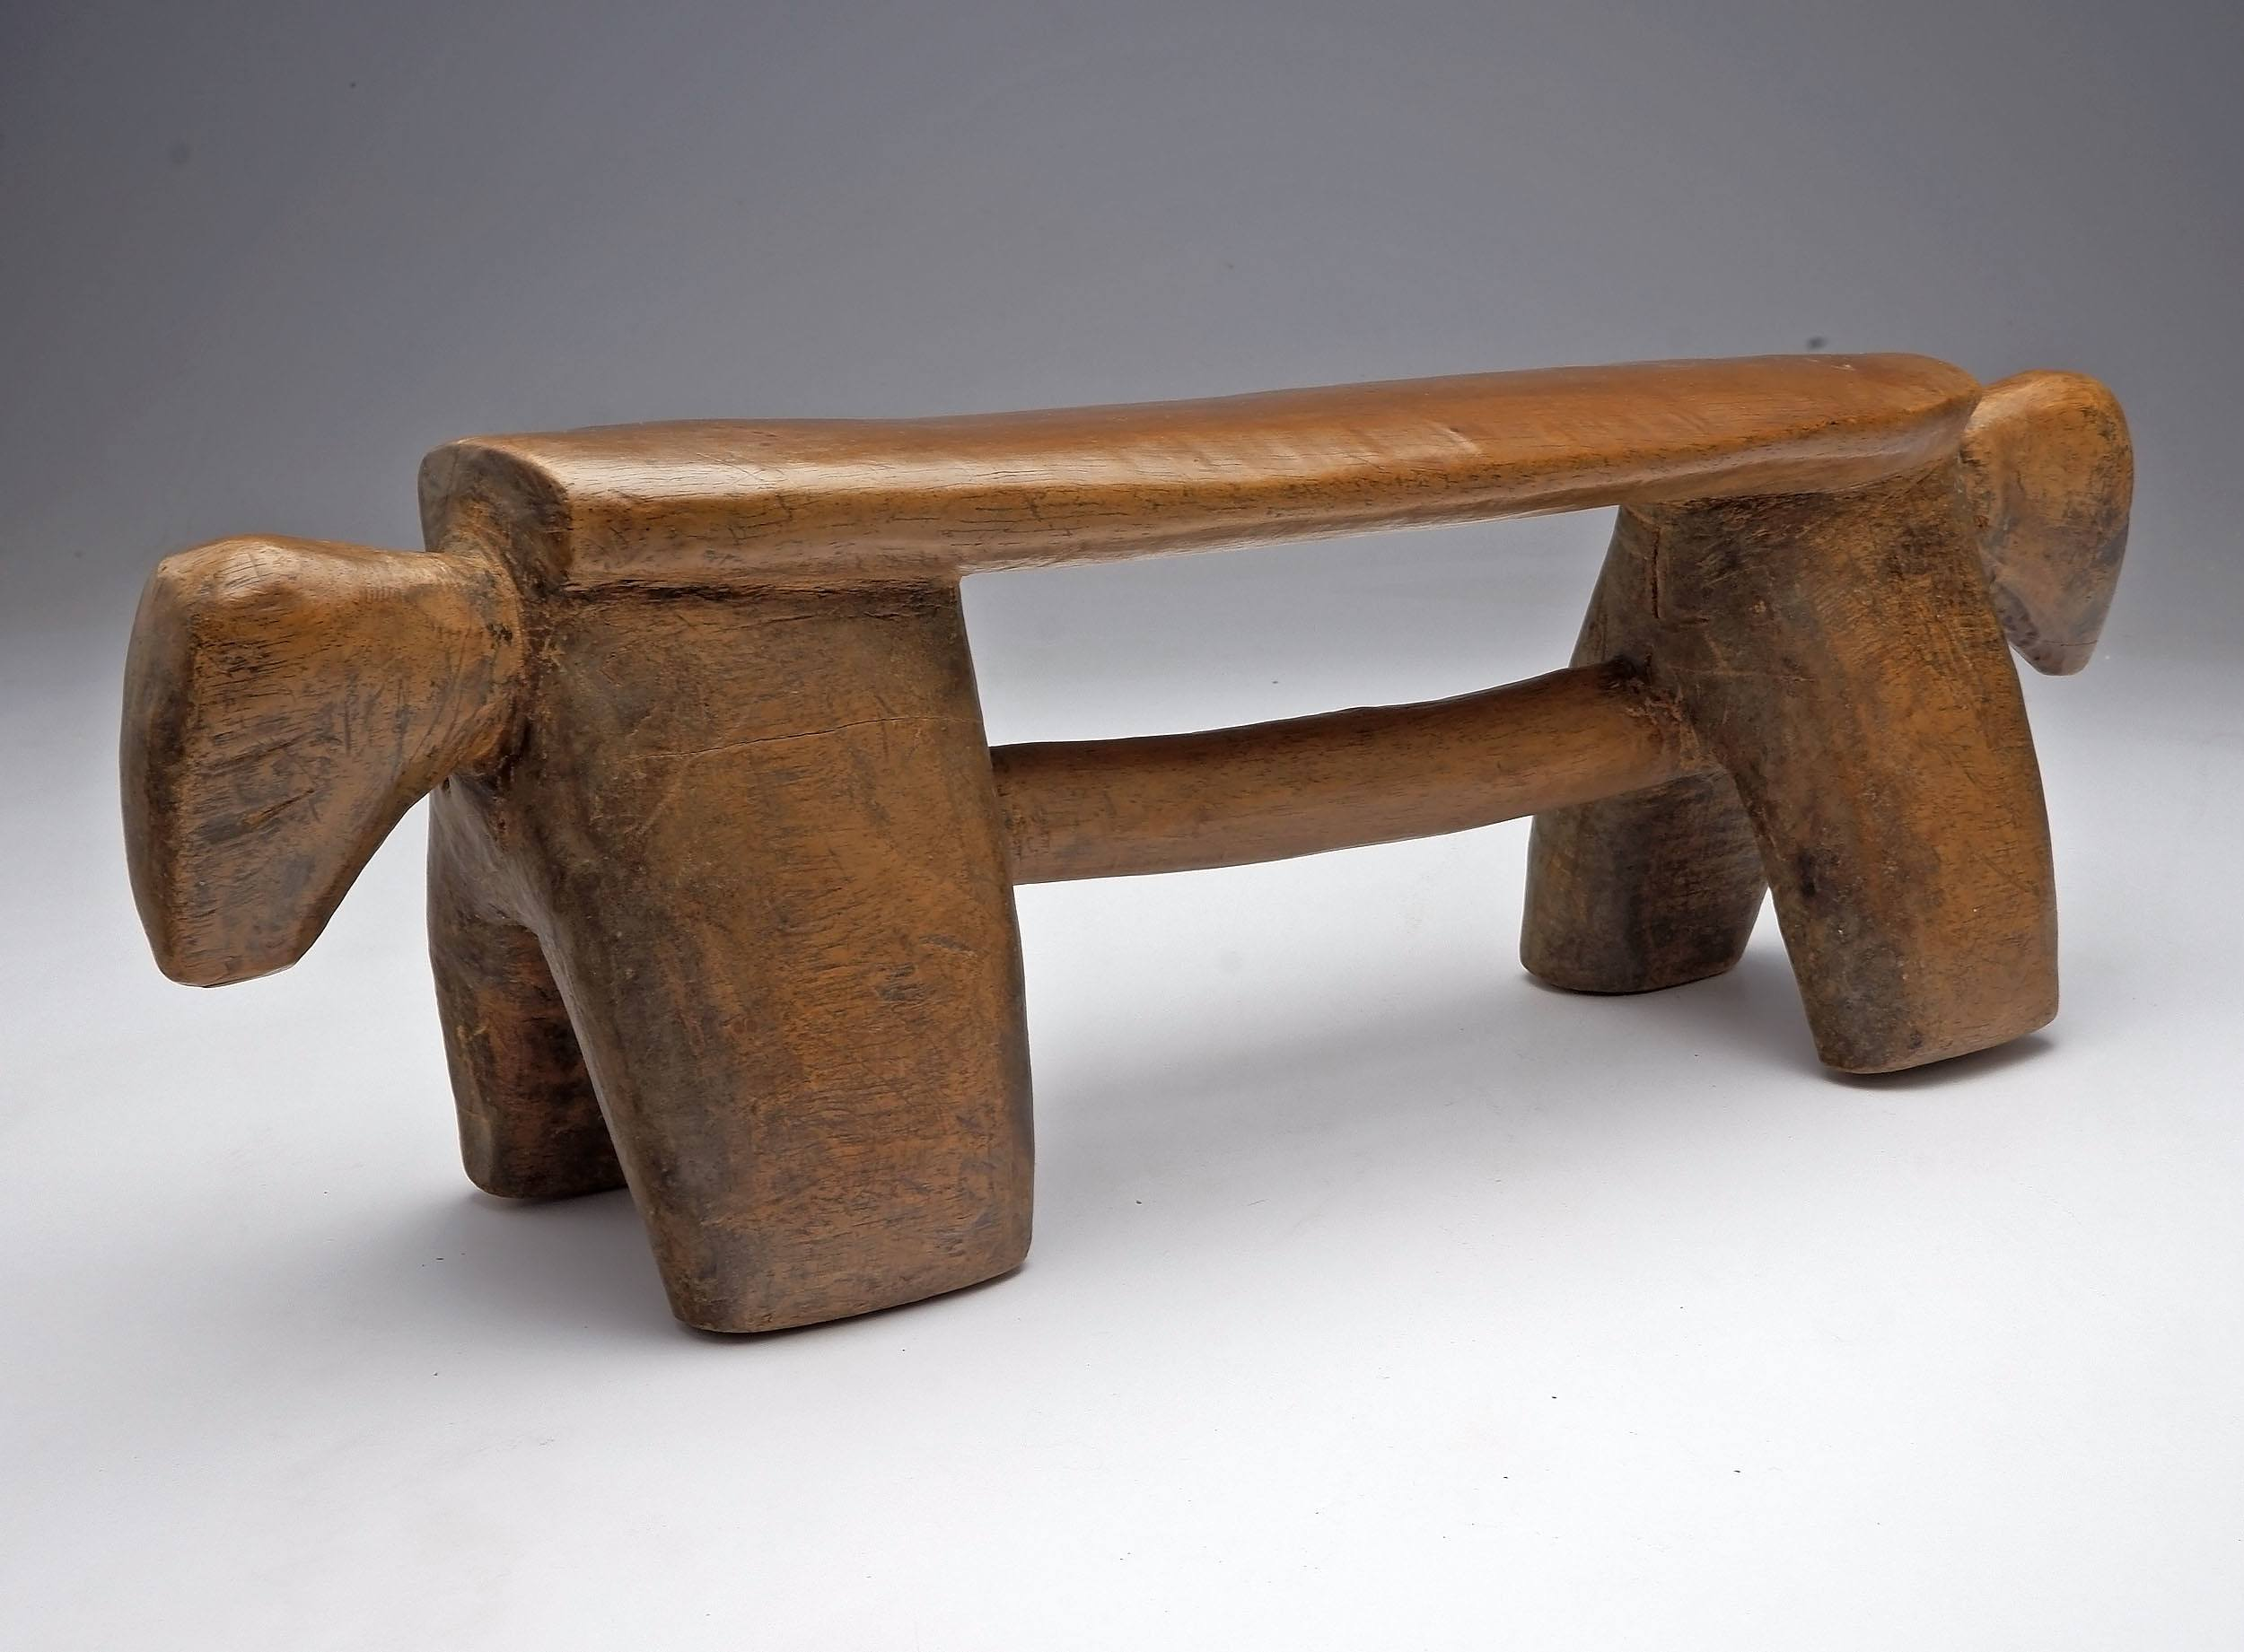 'Headrest in Zoomorphic Style, Dinka People, Nile Basin Region South Sudan'